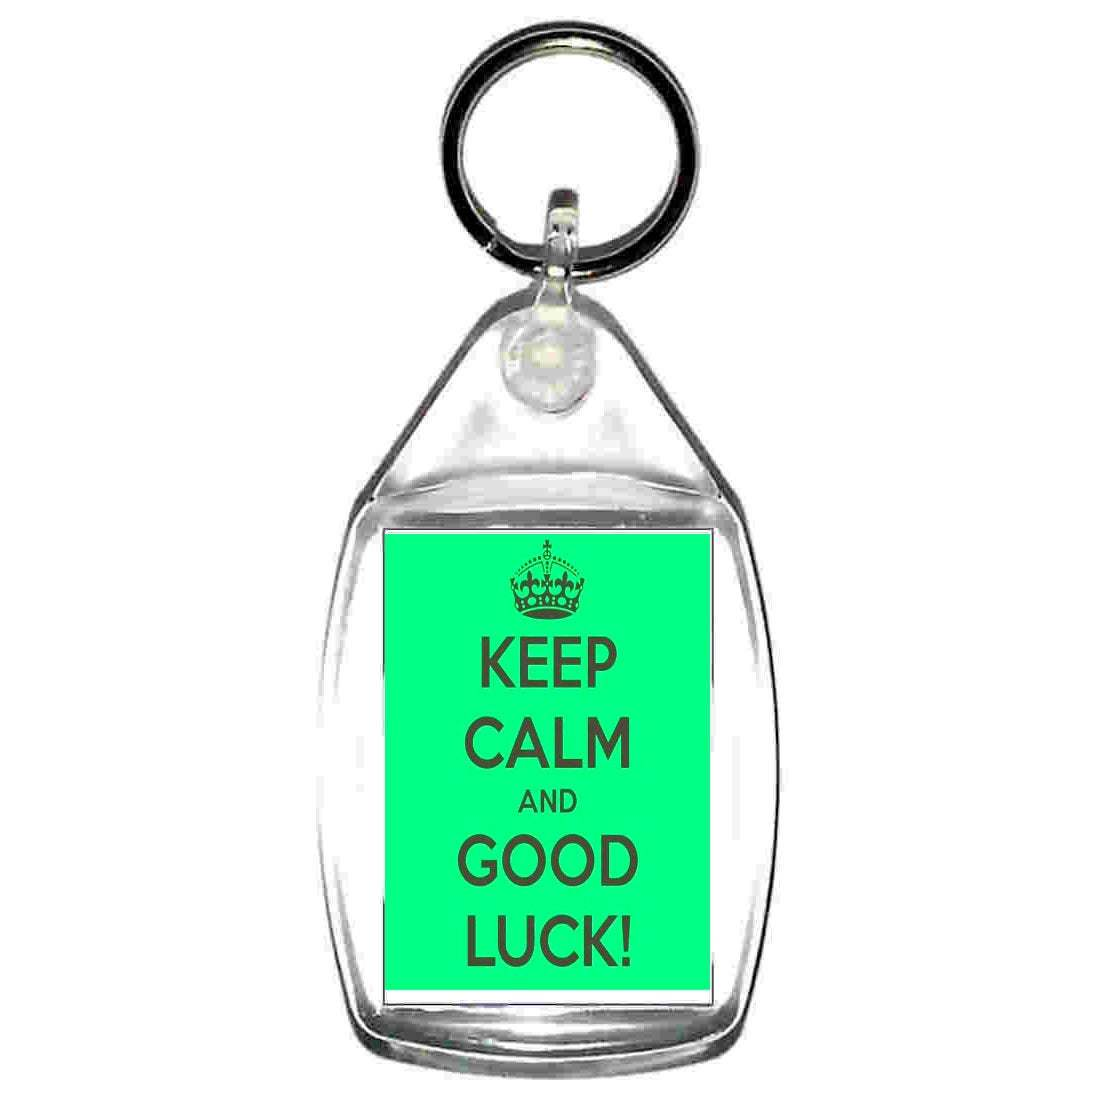 keep calm good luck  keyring  handmade in uk from uk made parts, keyring, keyfob